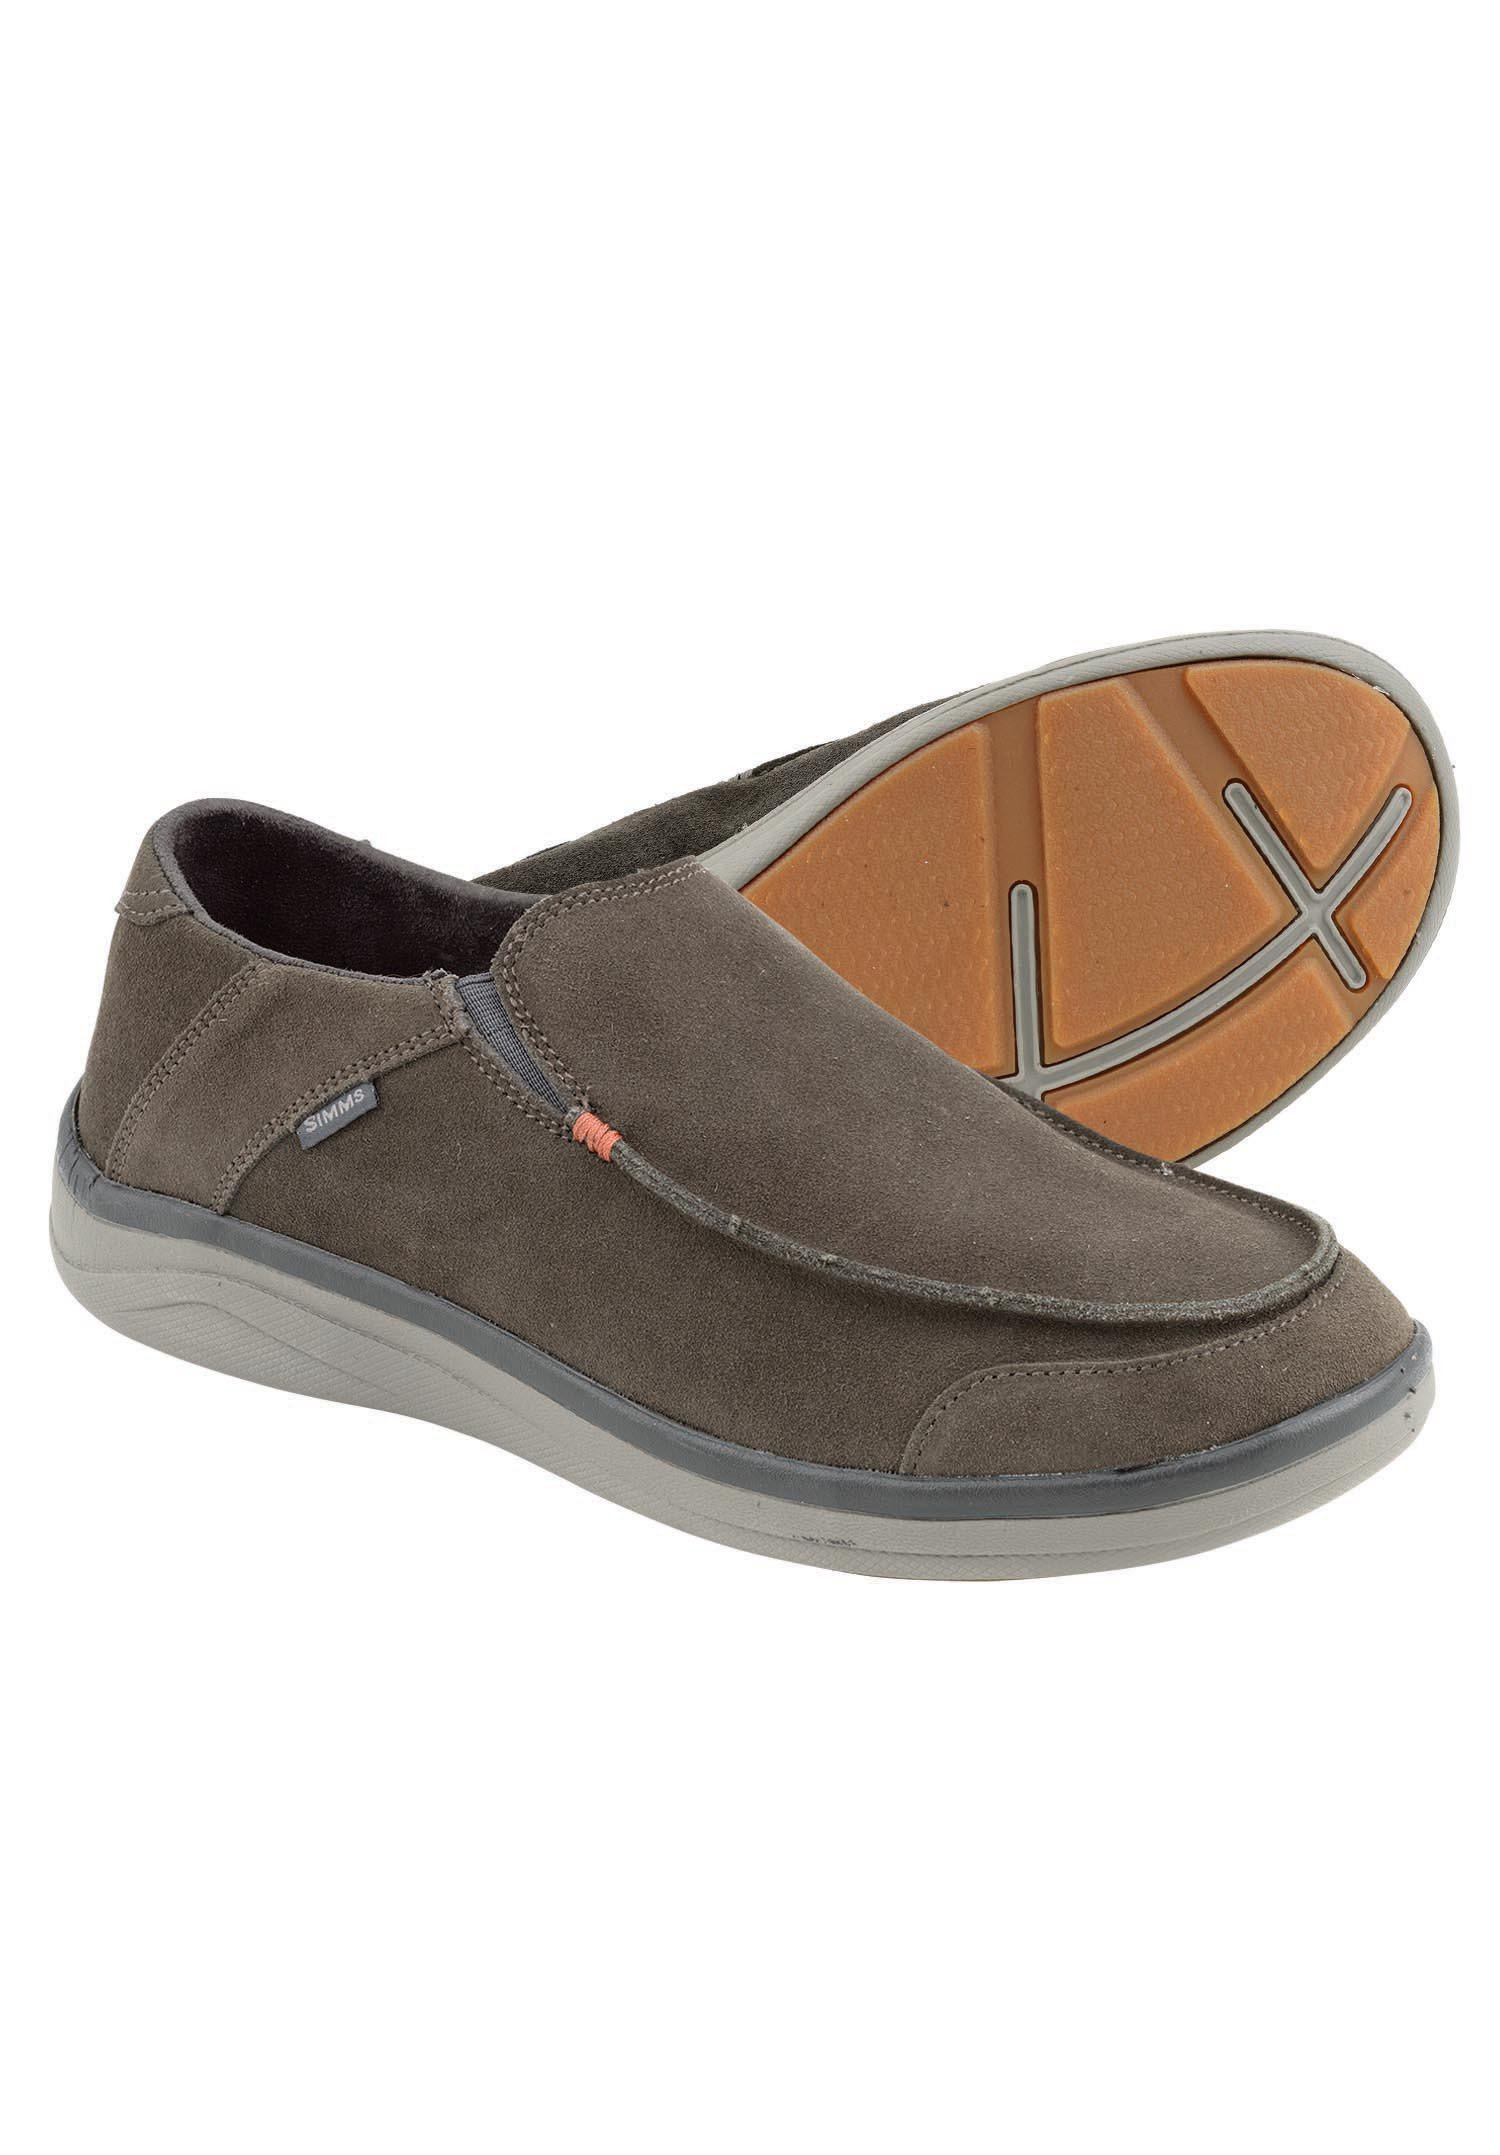 Simms westshore leather slip on shoe glasgow angling centre for Simms fishing shoes